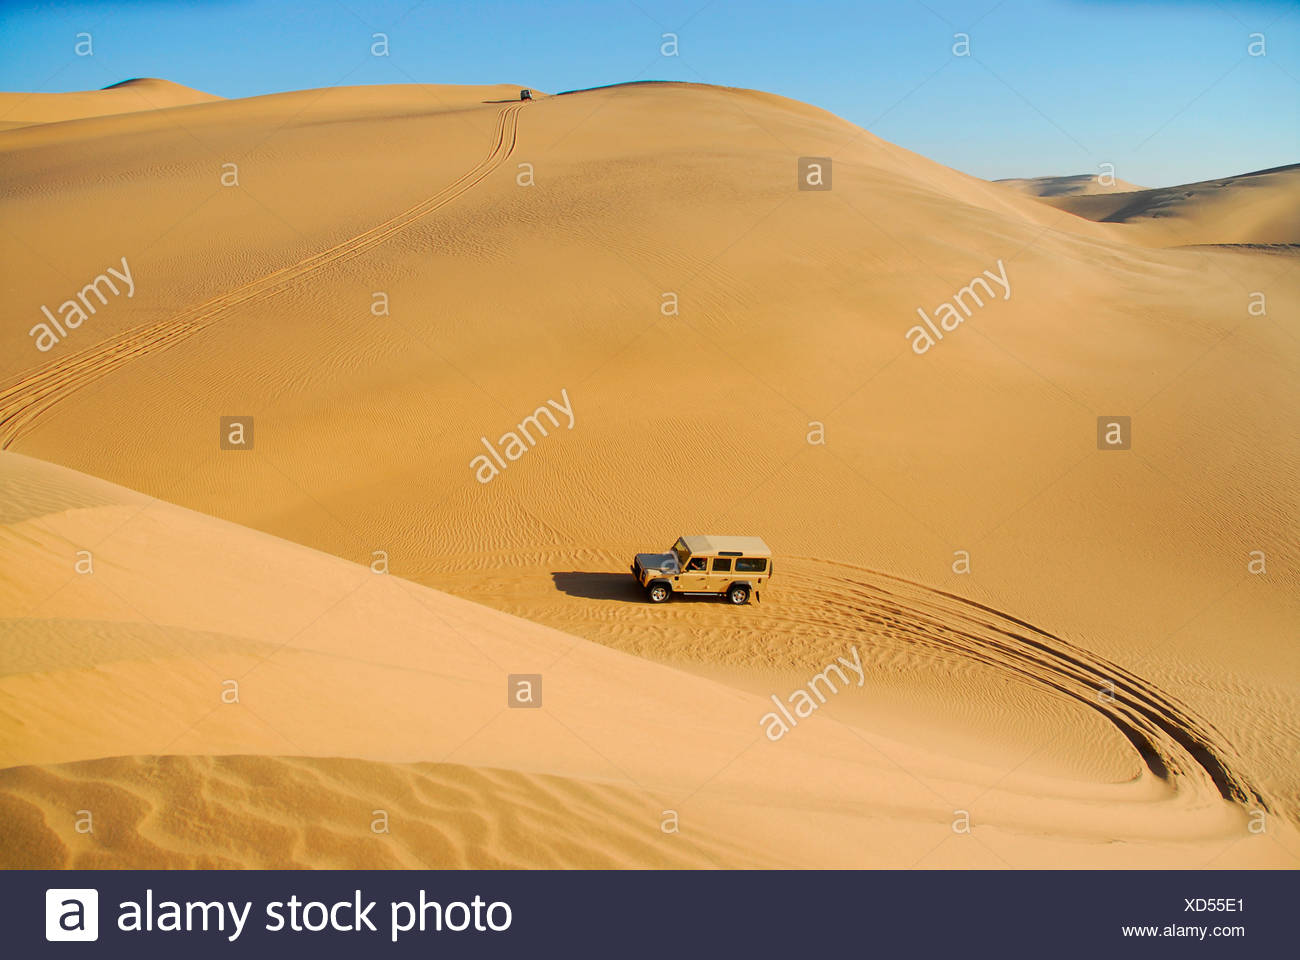 Jeeps in the dunes near Conception Bay, restricted diamond area, Namibia, Africa - Stock Image